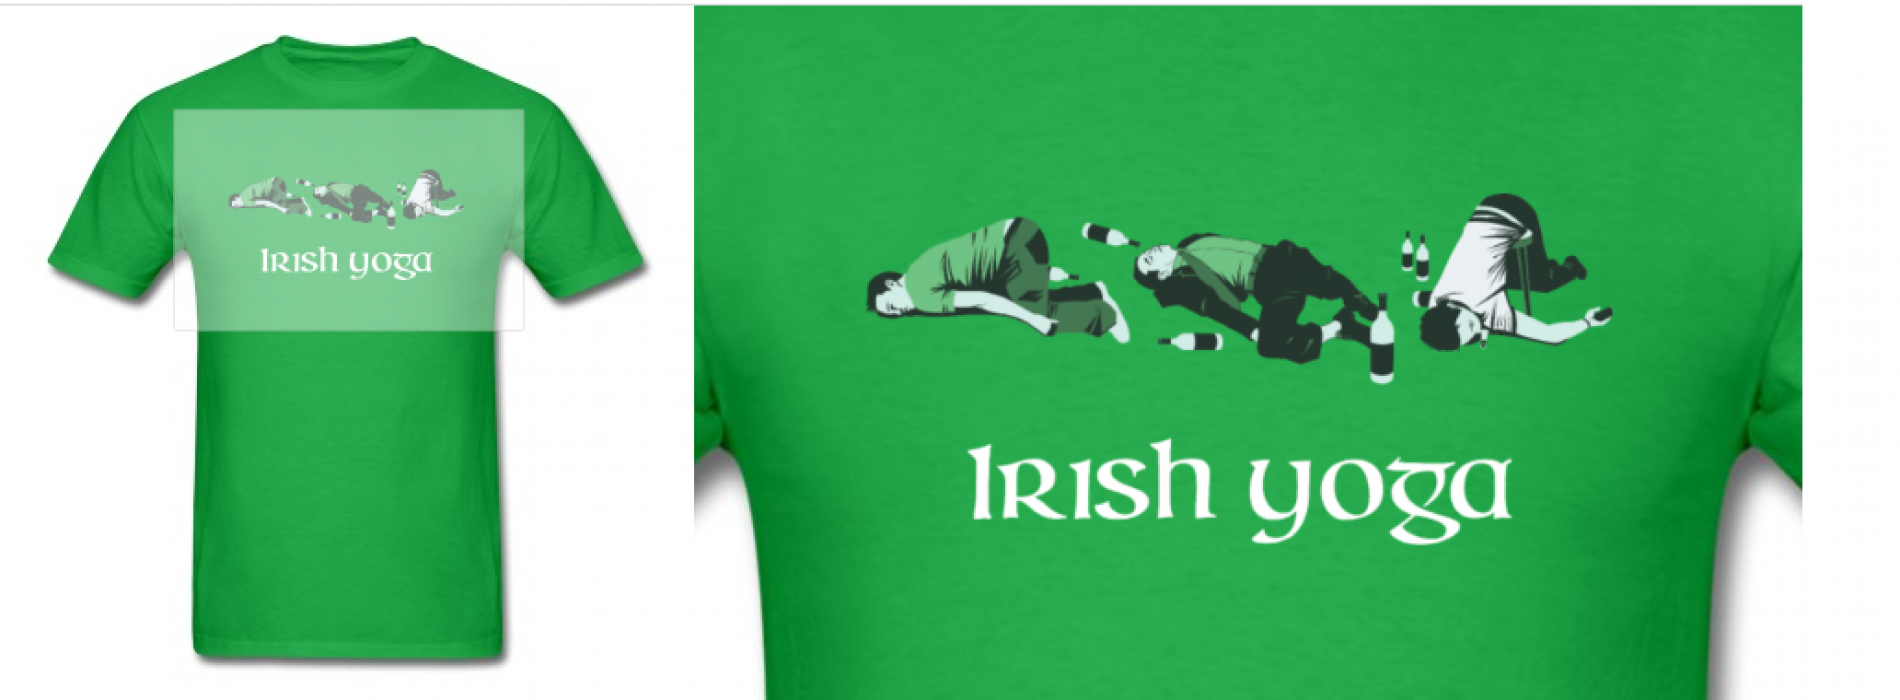 Enough With the Demeaning Drunk Irish Themes says NY Designer